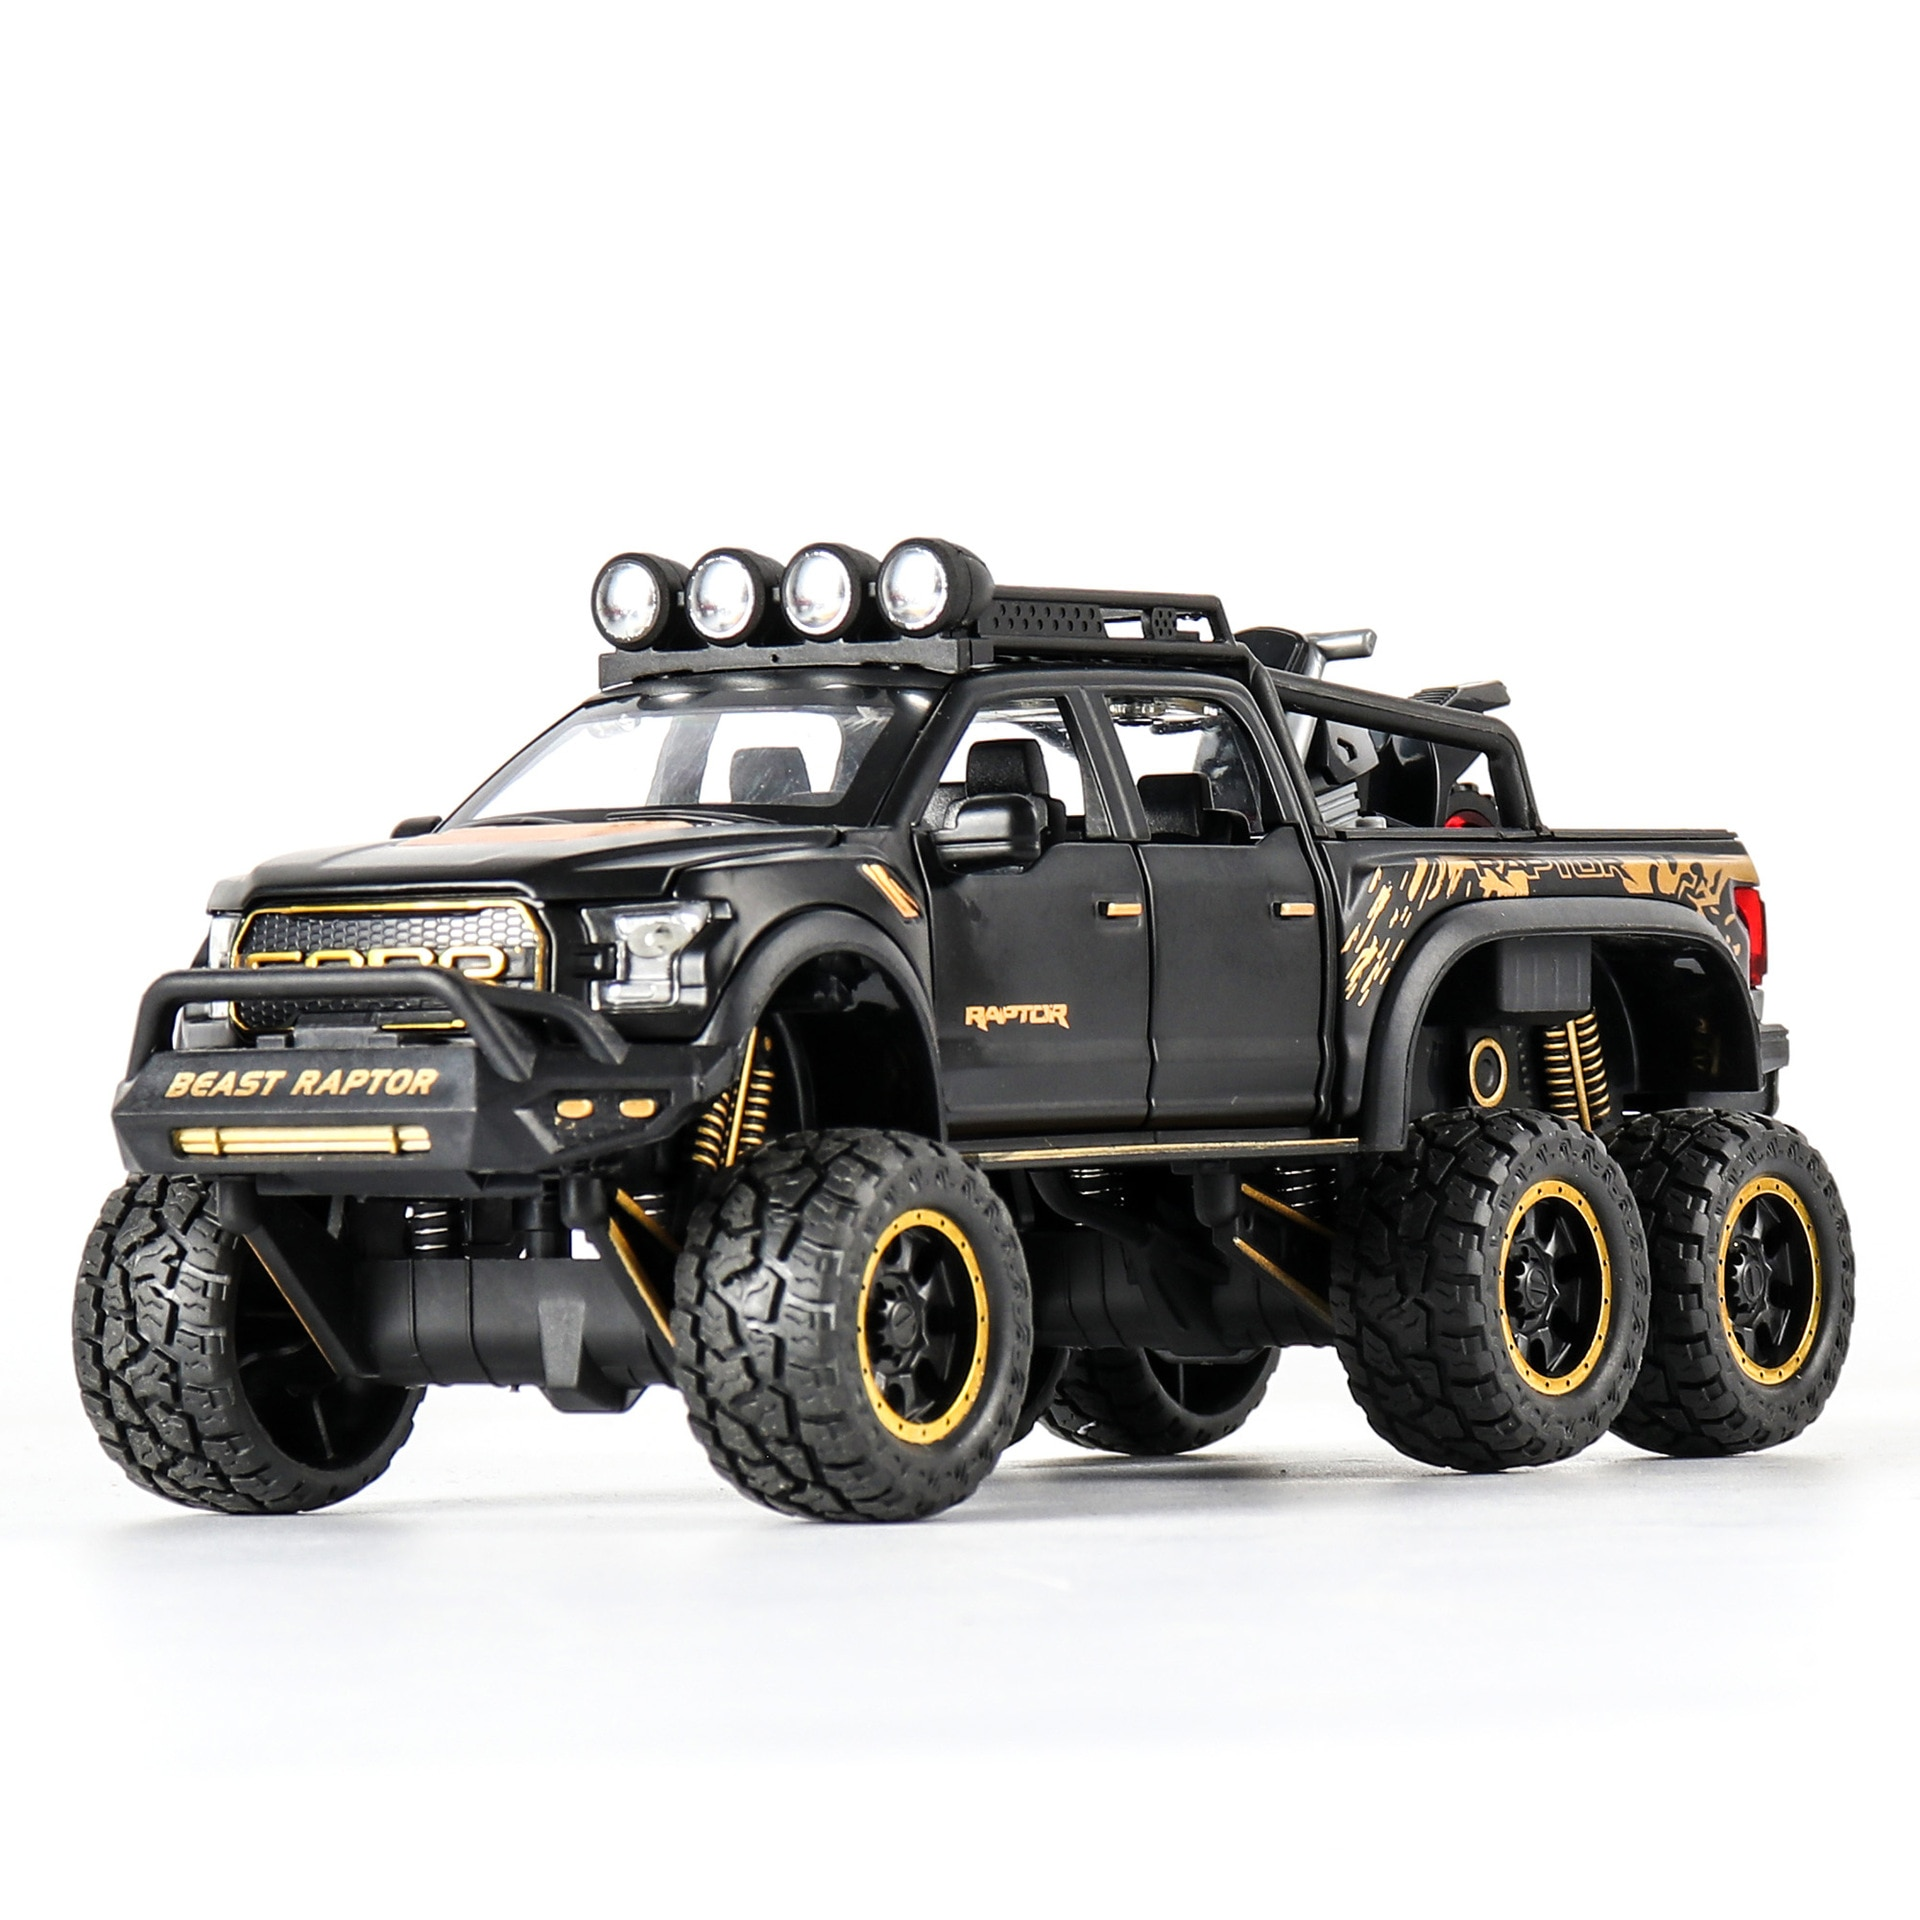 1:24 Diecast Toy Car Model Metal Wheels Kids Toy Suv Vehicle Simulation F150 Sound Light Pull Back Car Ornament Boy Car Toy Gift 1 24 diecast alloy car model metal car toy wheels toy vehicle simulation sound light pull back car collection kids toy car gift